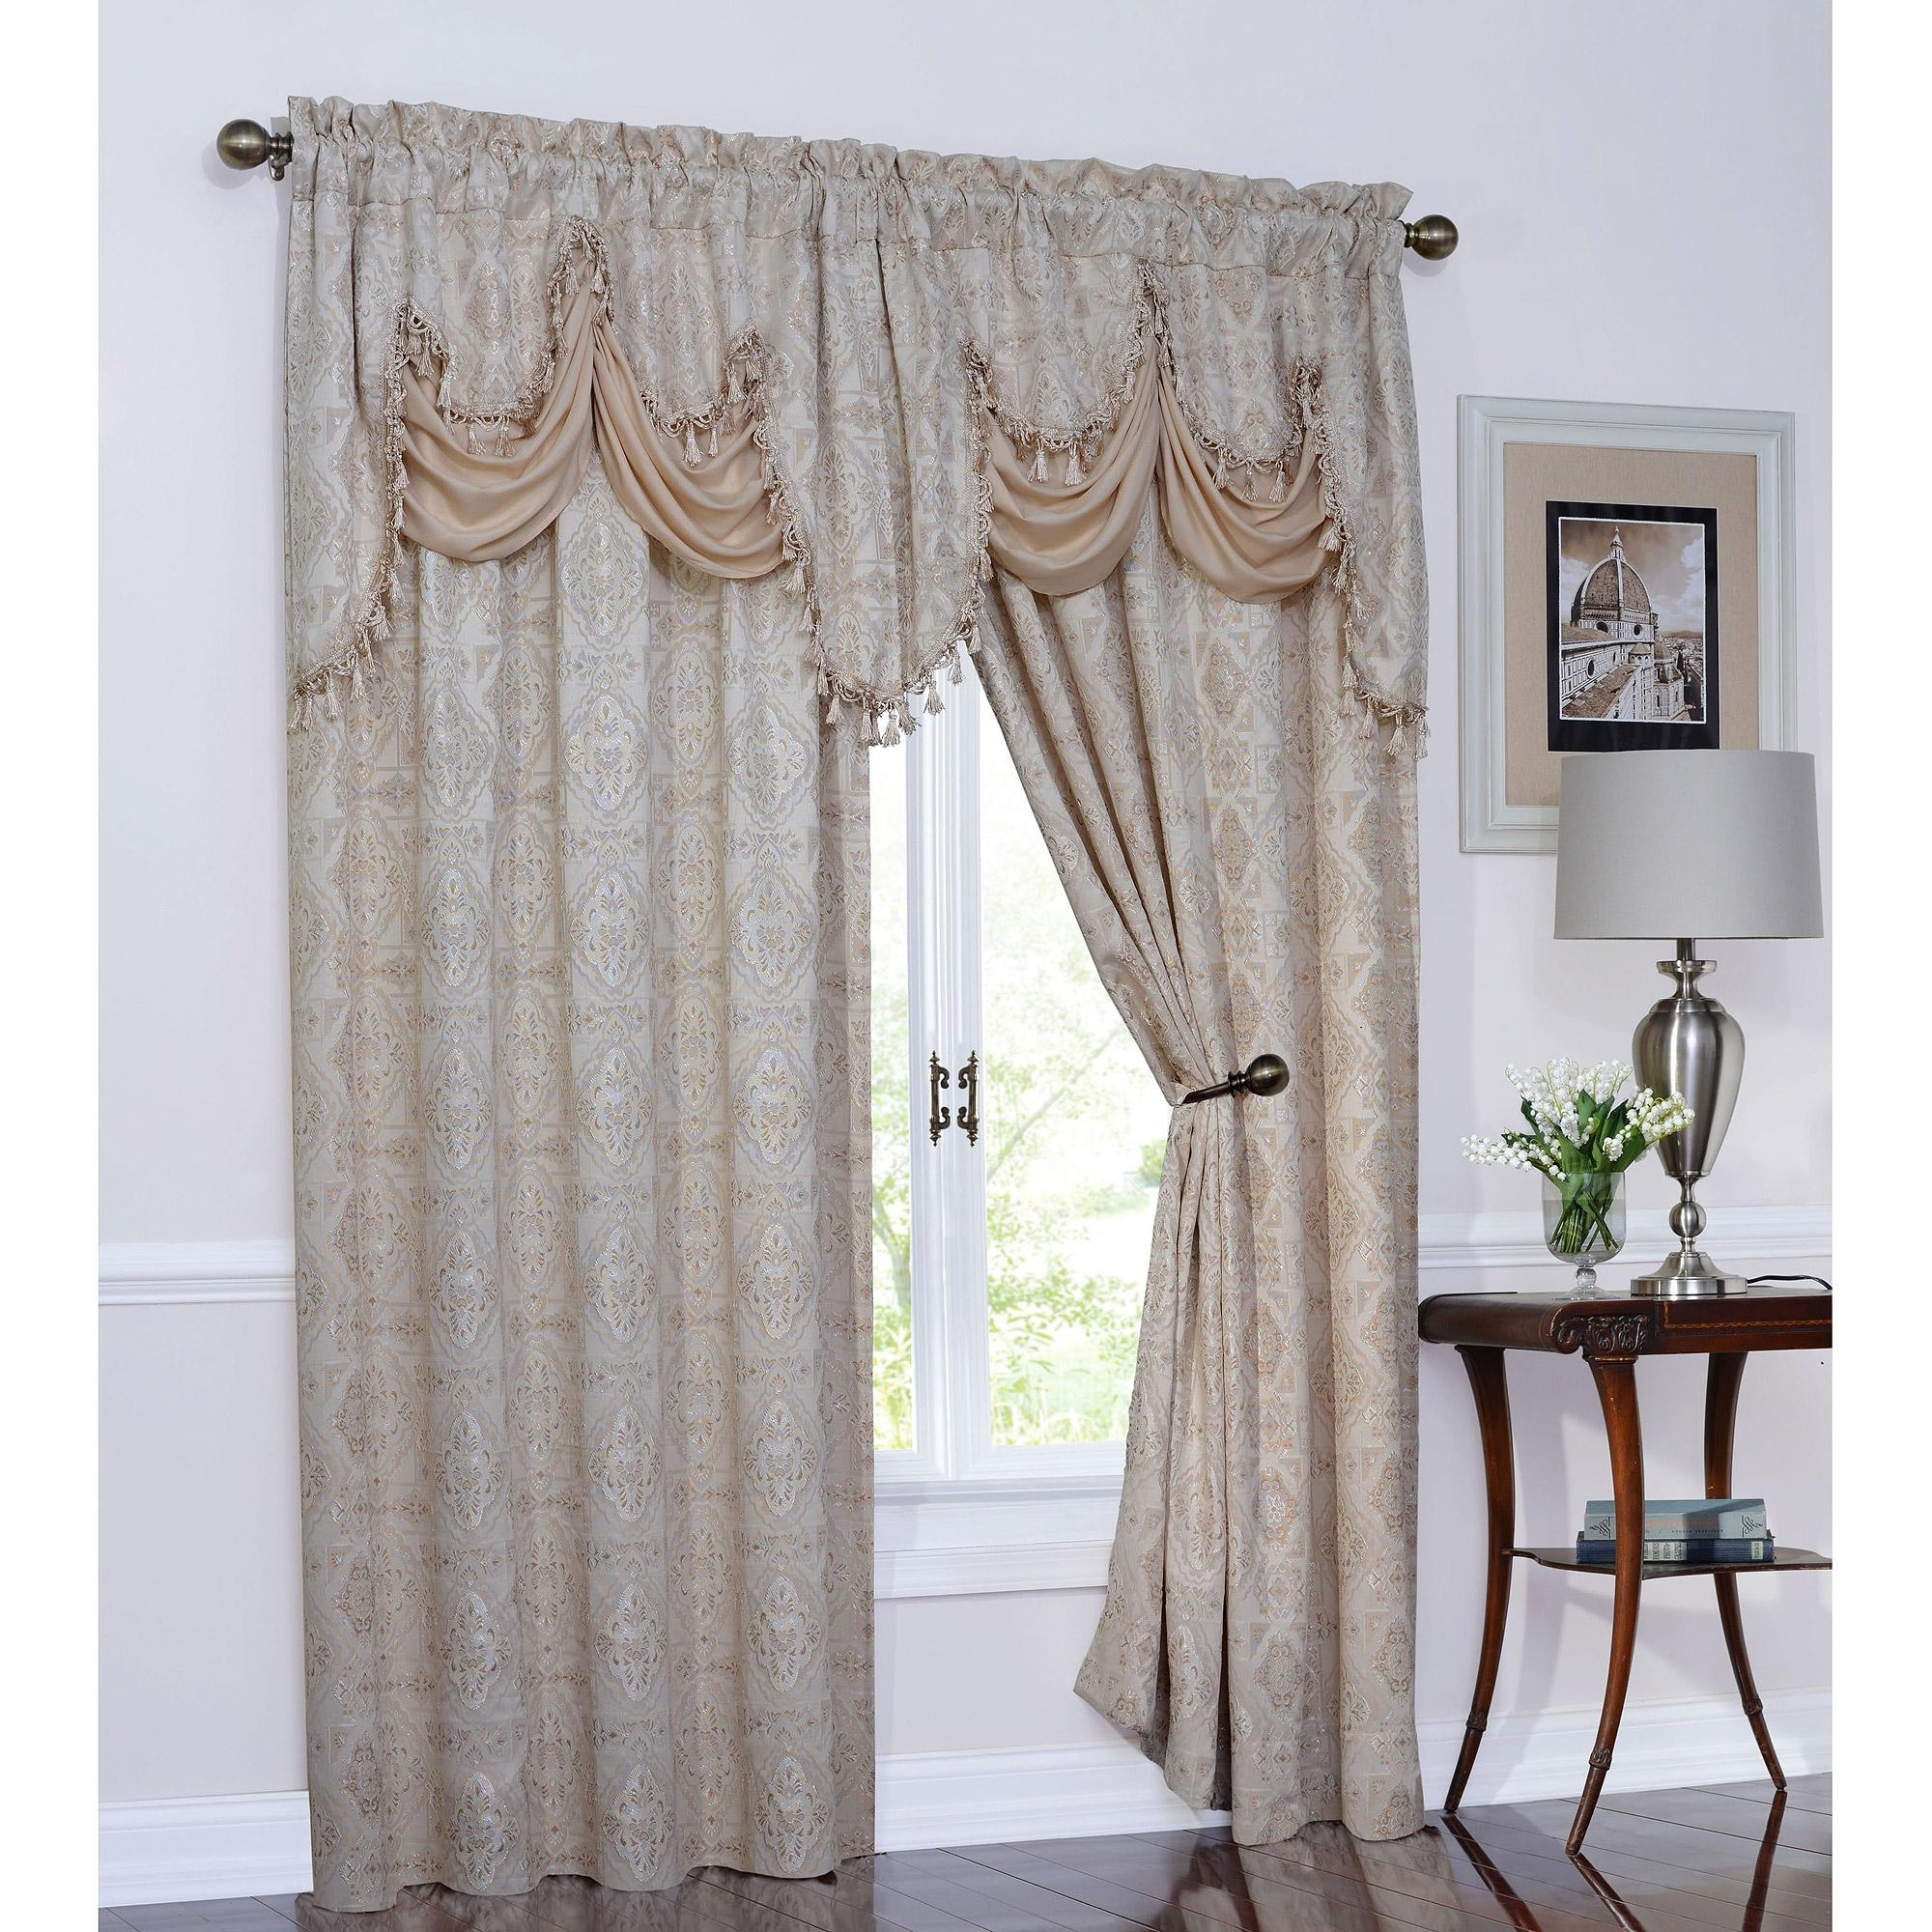 Window Cool Atmosphere With Thermal Curtains Target For Your Home Within Short Brown Curtains (Image 22 of 25)